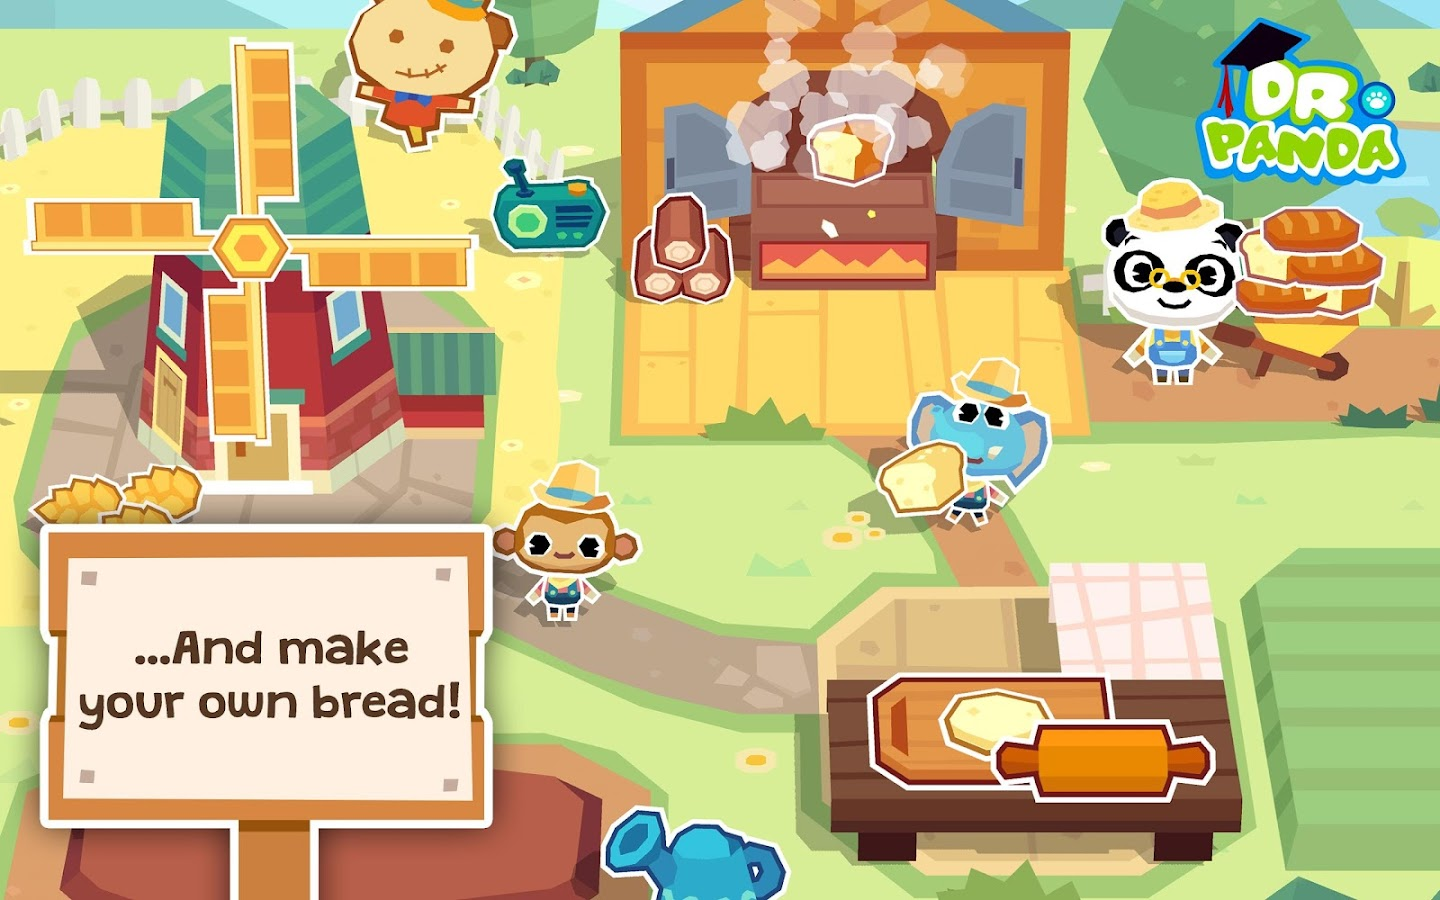 Dr. Panda Farm Screenshot 8